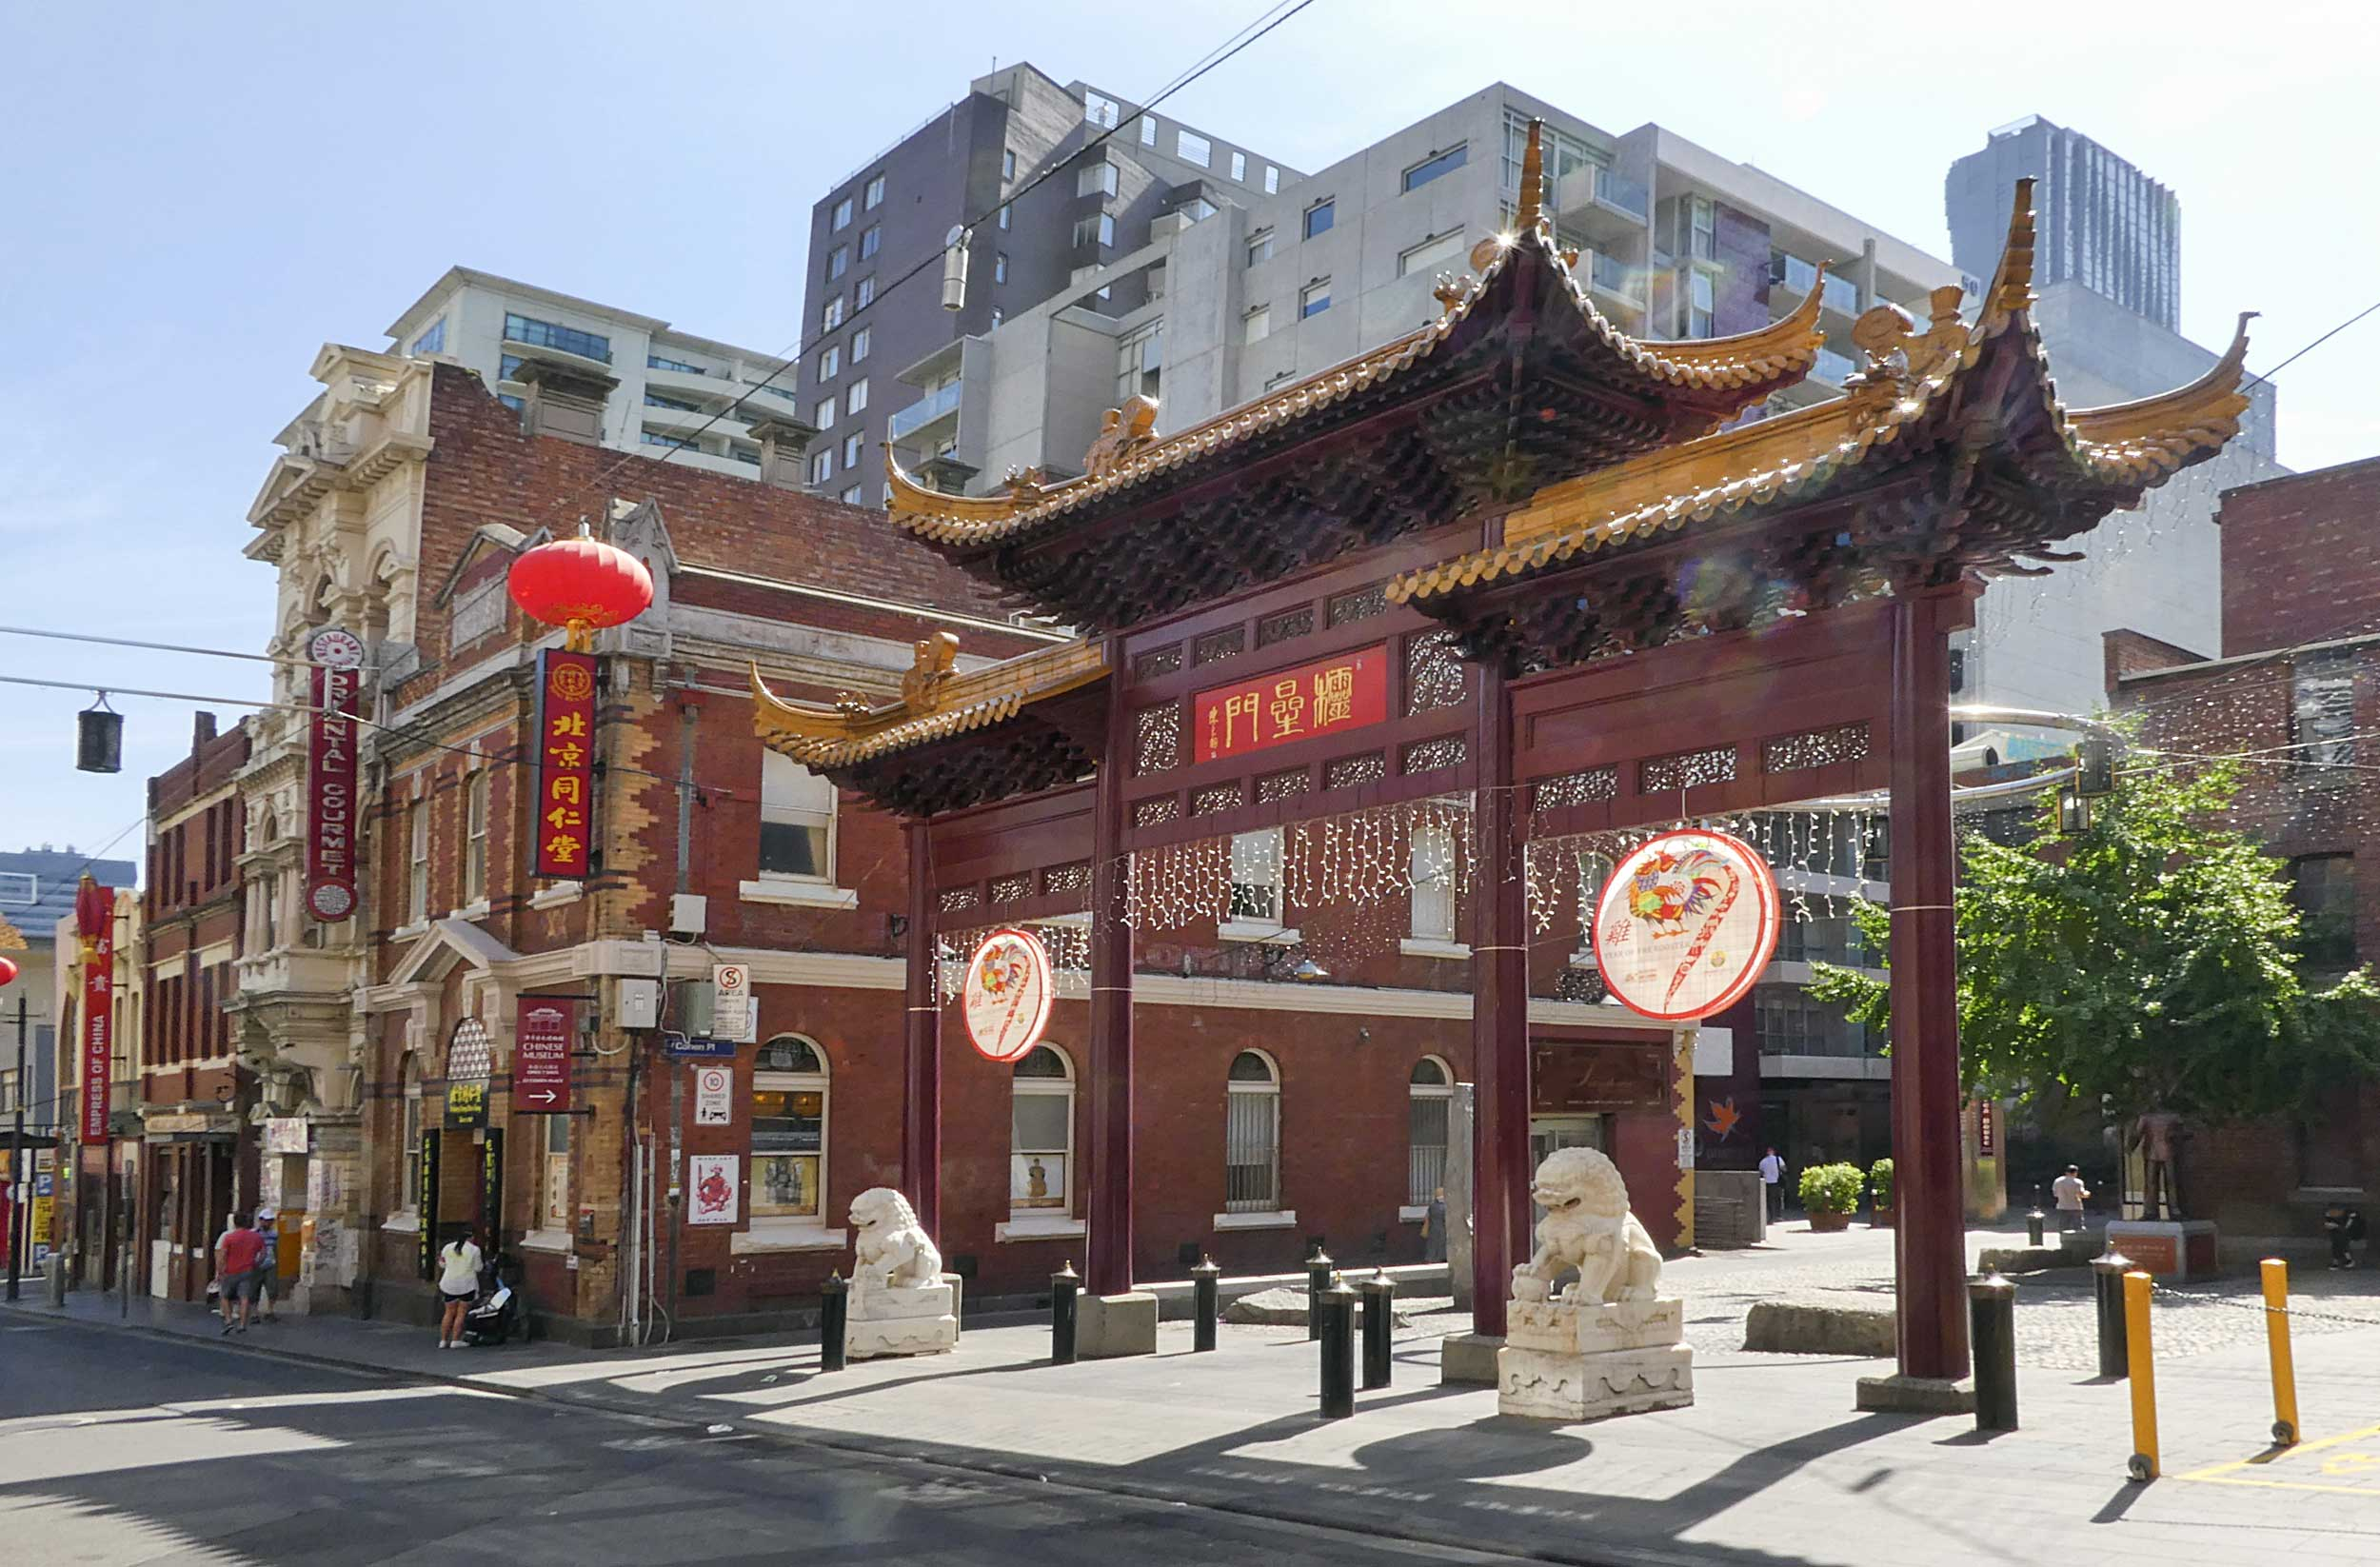 A Chinese archway and old buildings, Chinatown, Melbourne